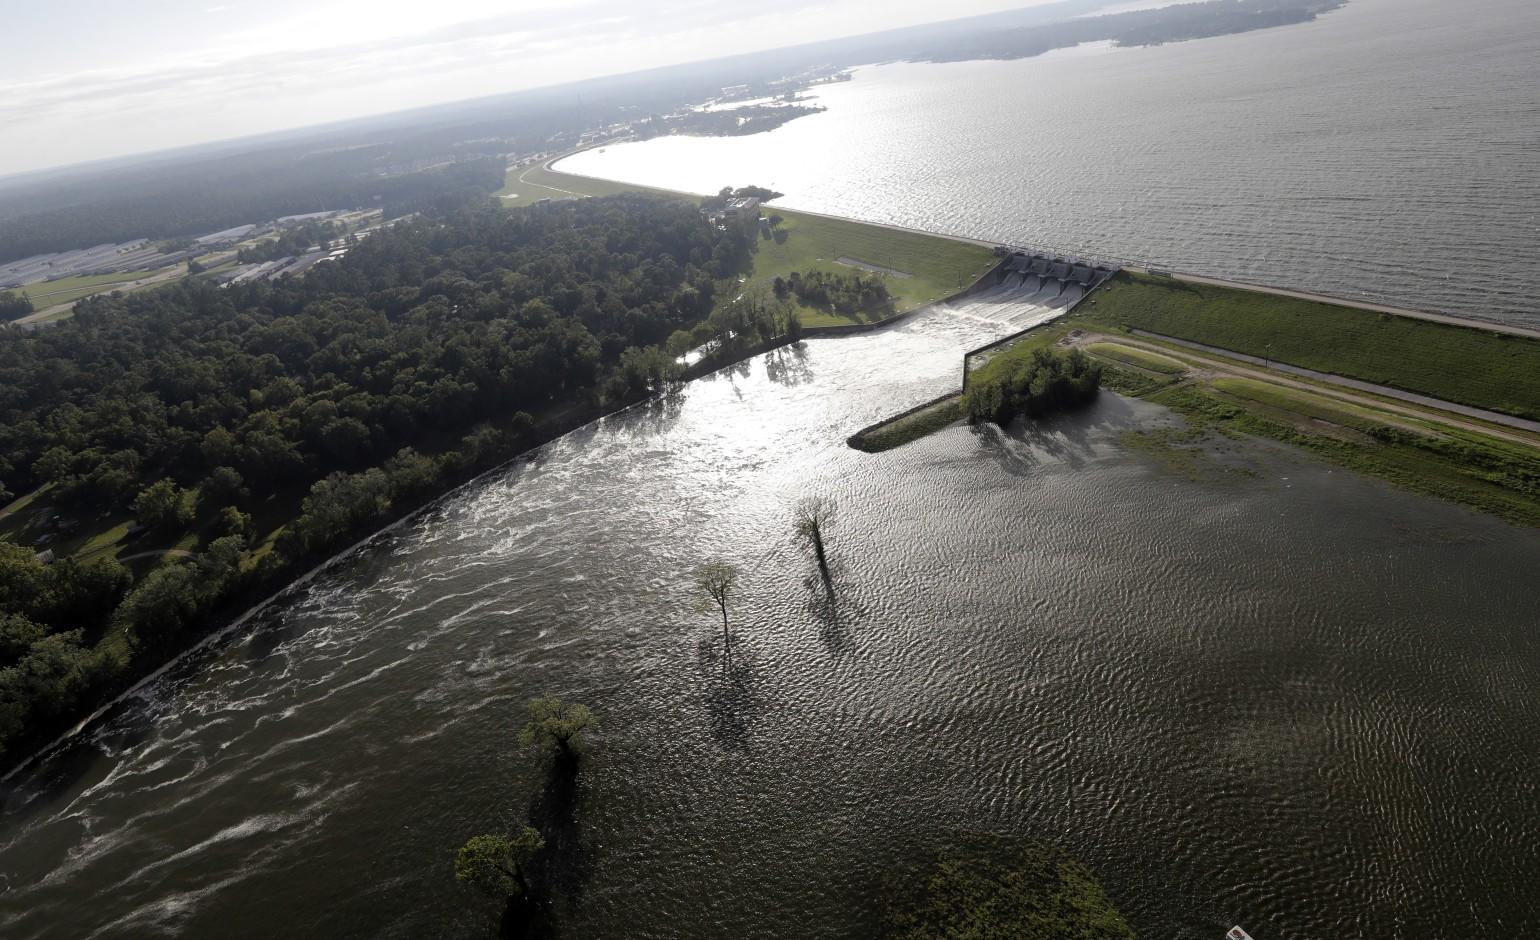 Party Boat Capsize On A Texas Lake Due To Bad Weather Leaves A Man Dead